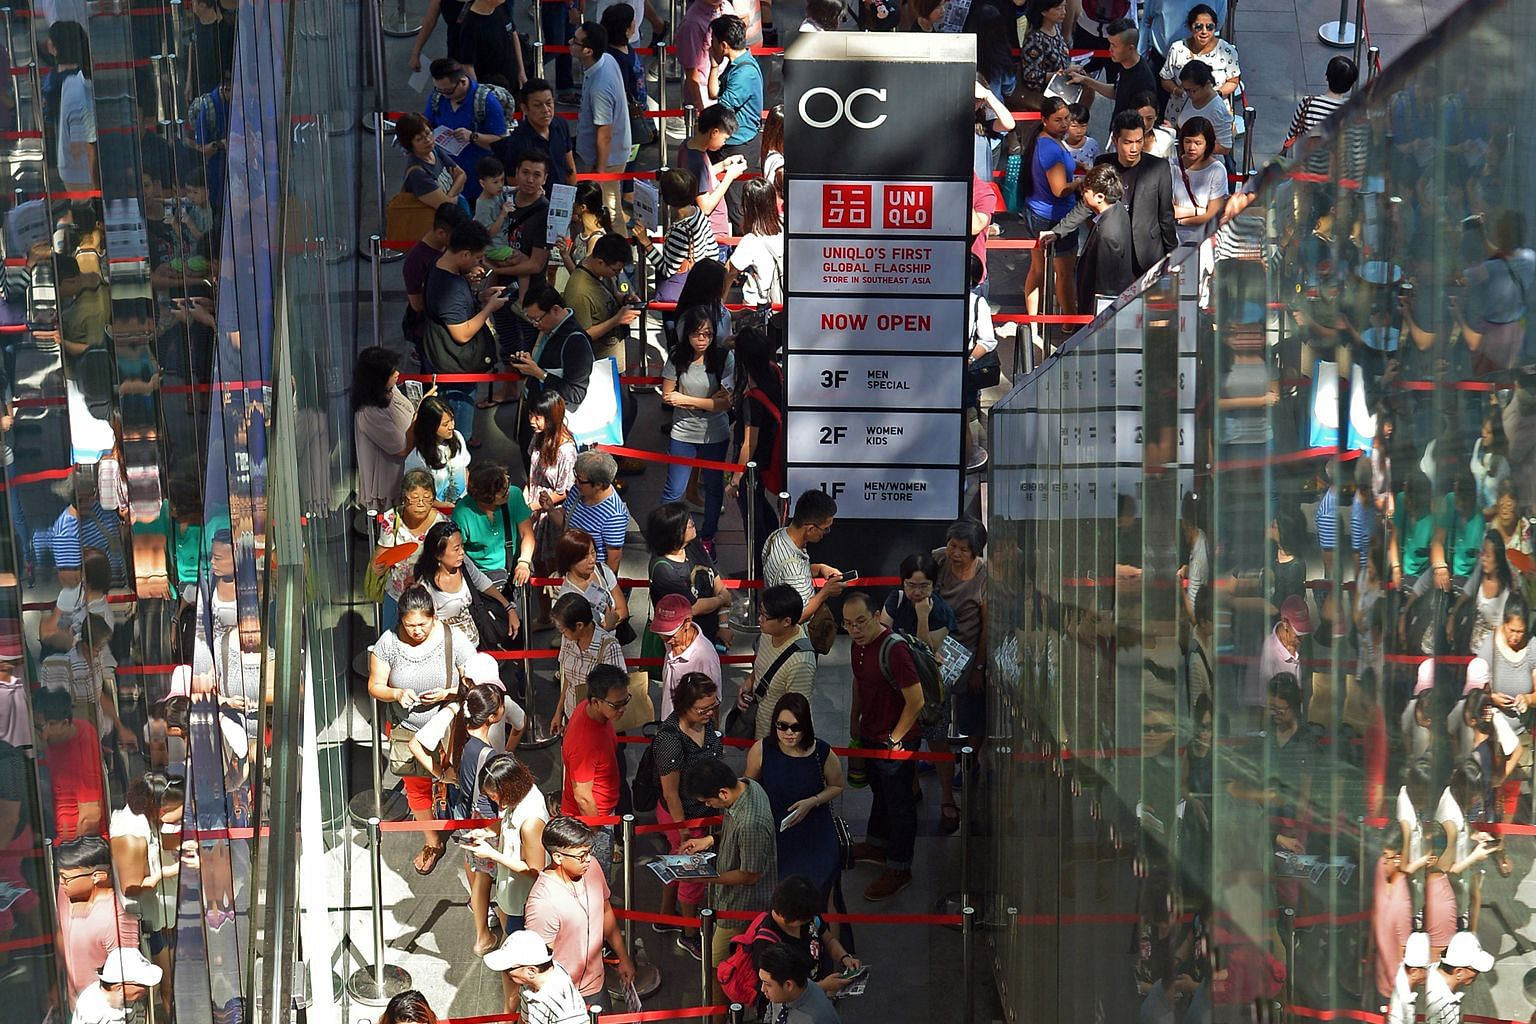 People waiting to get into the Uniqlo flagship store at Orchard Central yesterday.